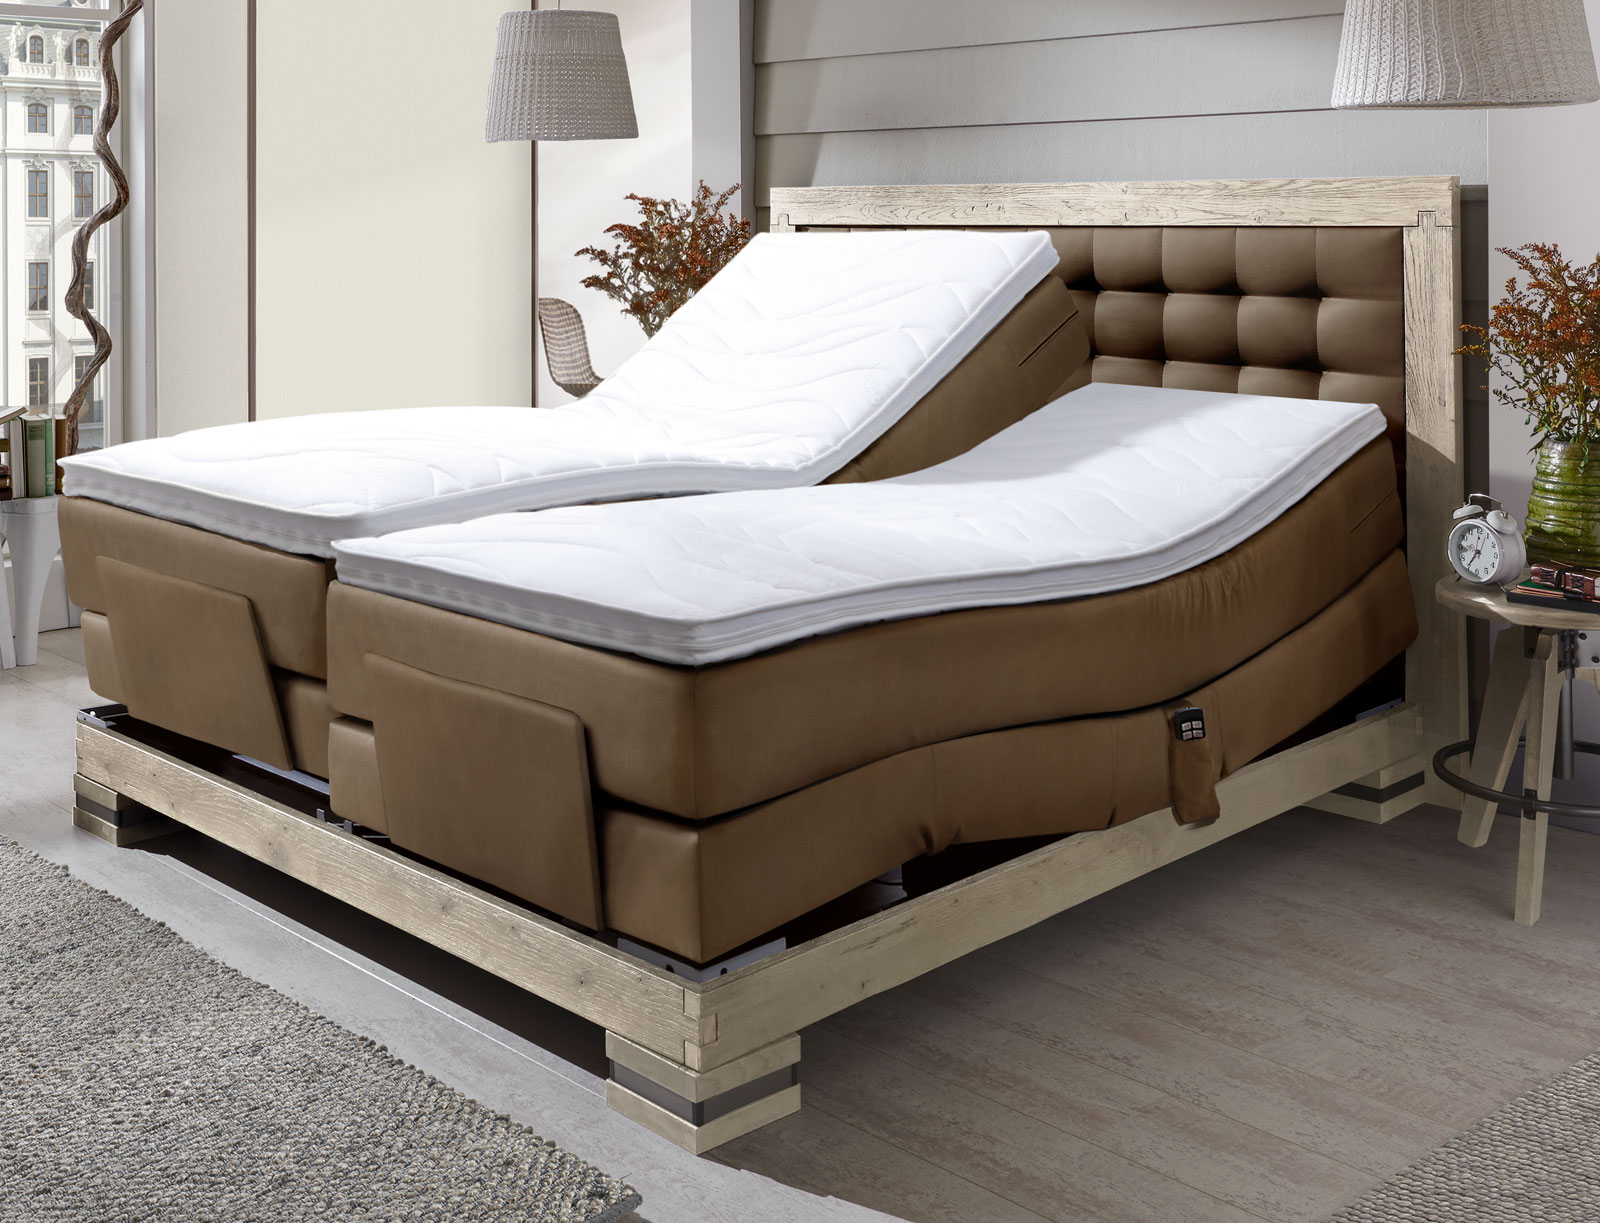 boxspringbett mit elektromotor 180x200 aronia elektro. Black Bedroom Furniture Sets. Home Design Ideas